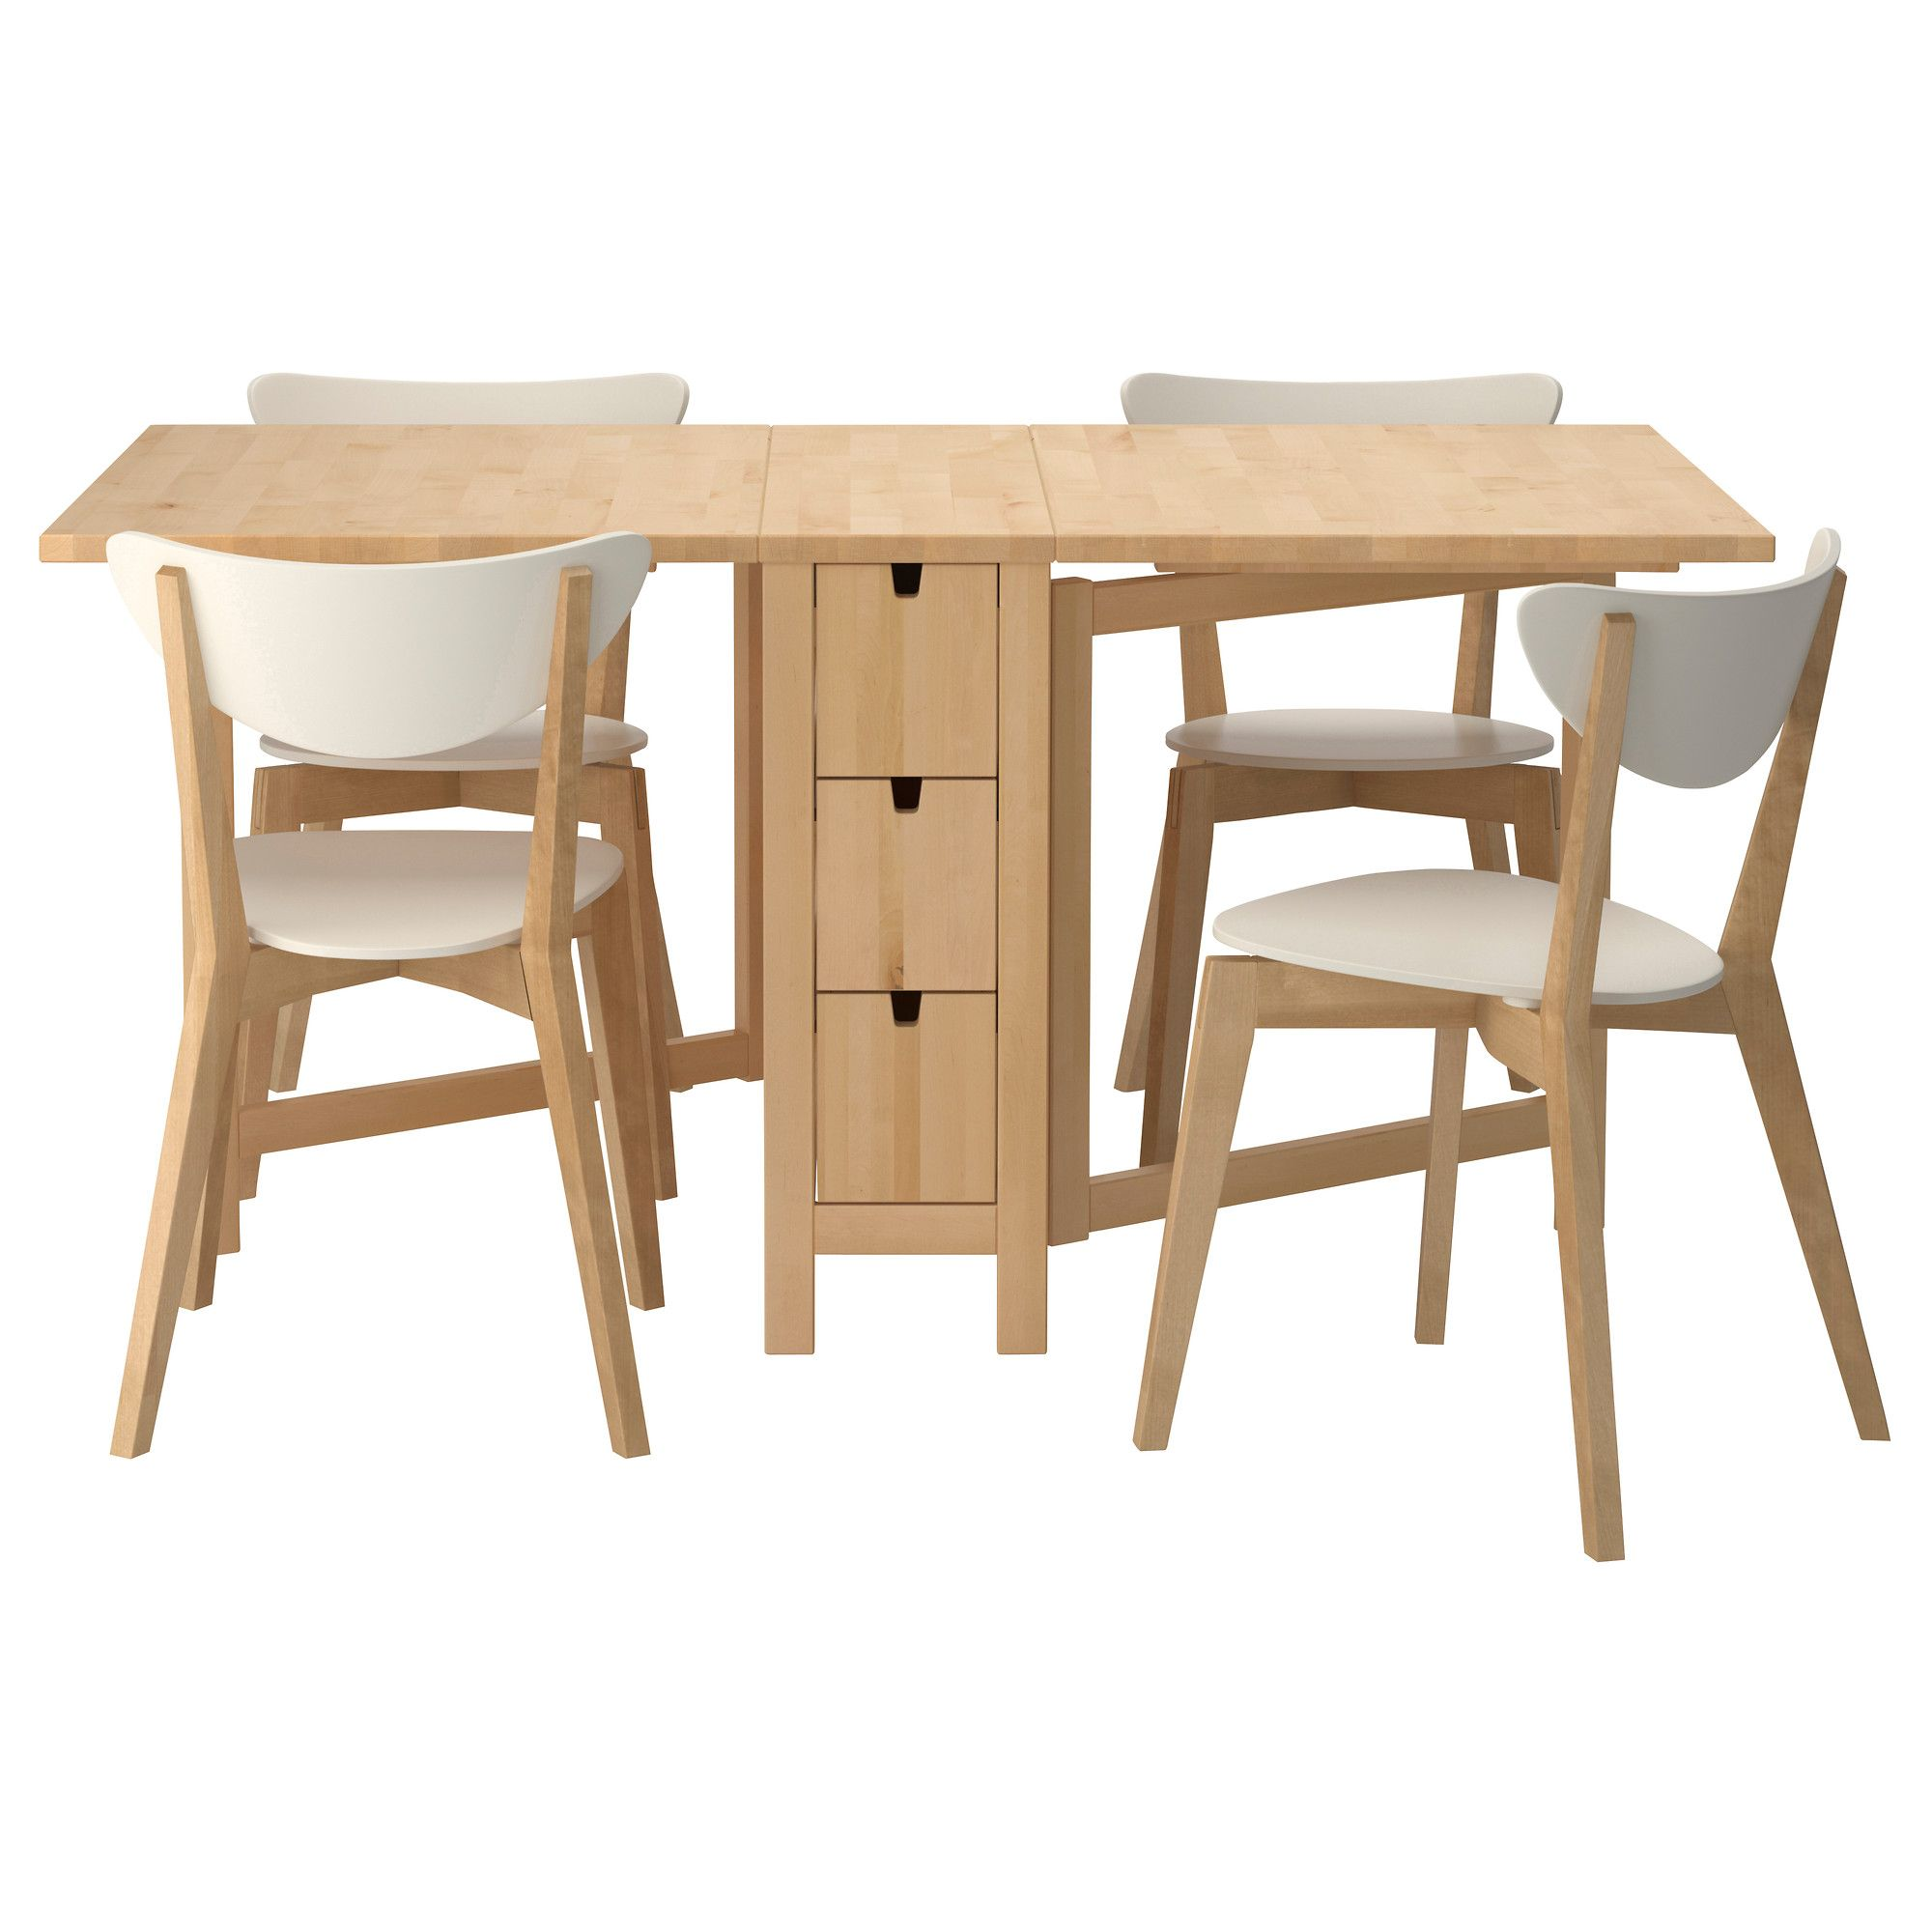 Kitchen Table And Chairs For Small Spaces: The Best Options for Consideration